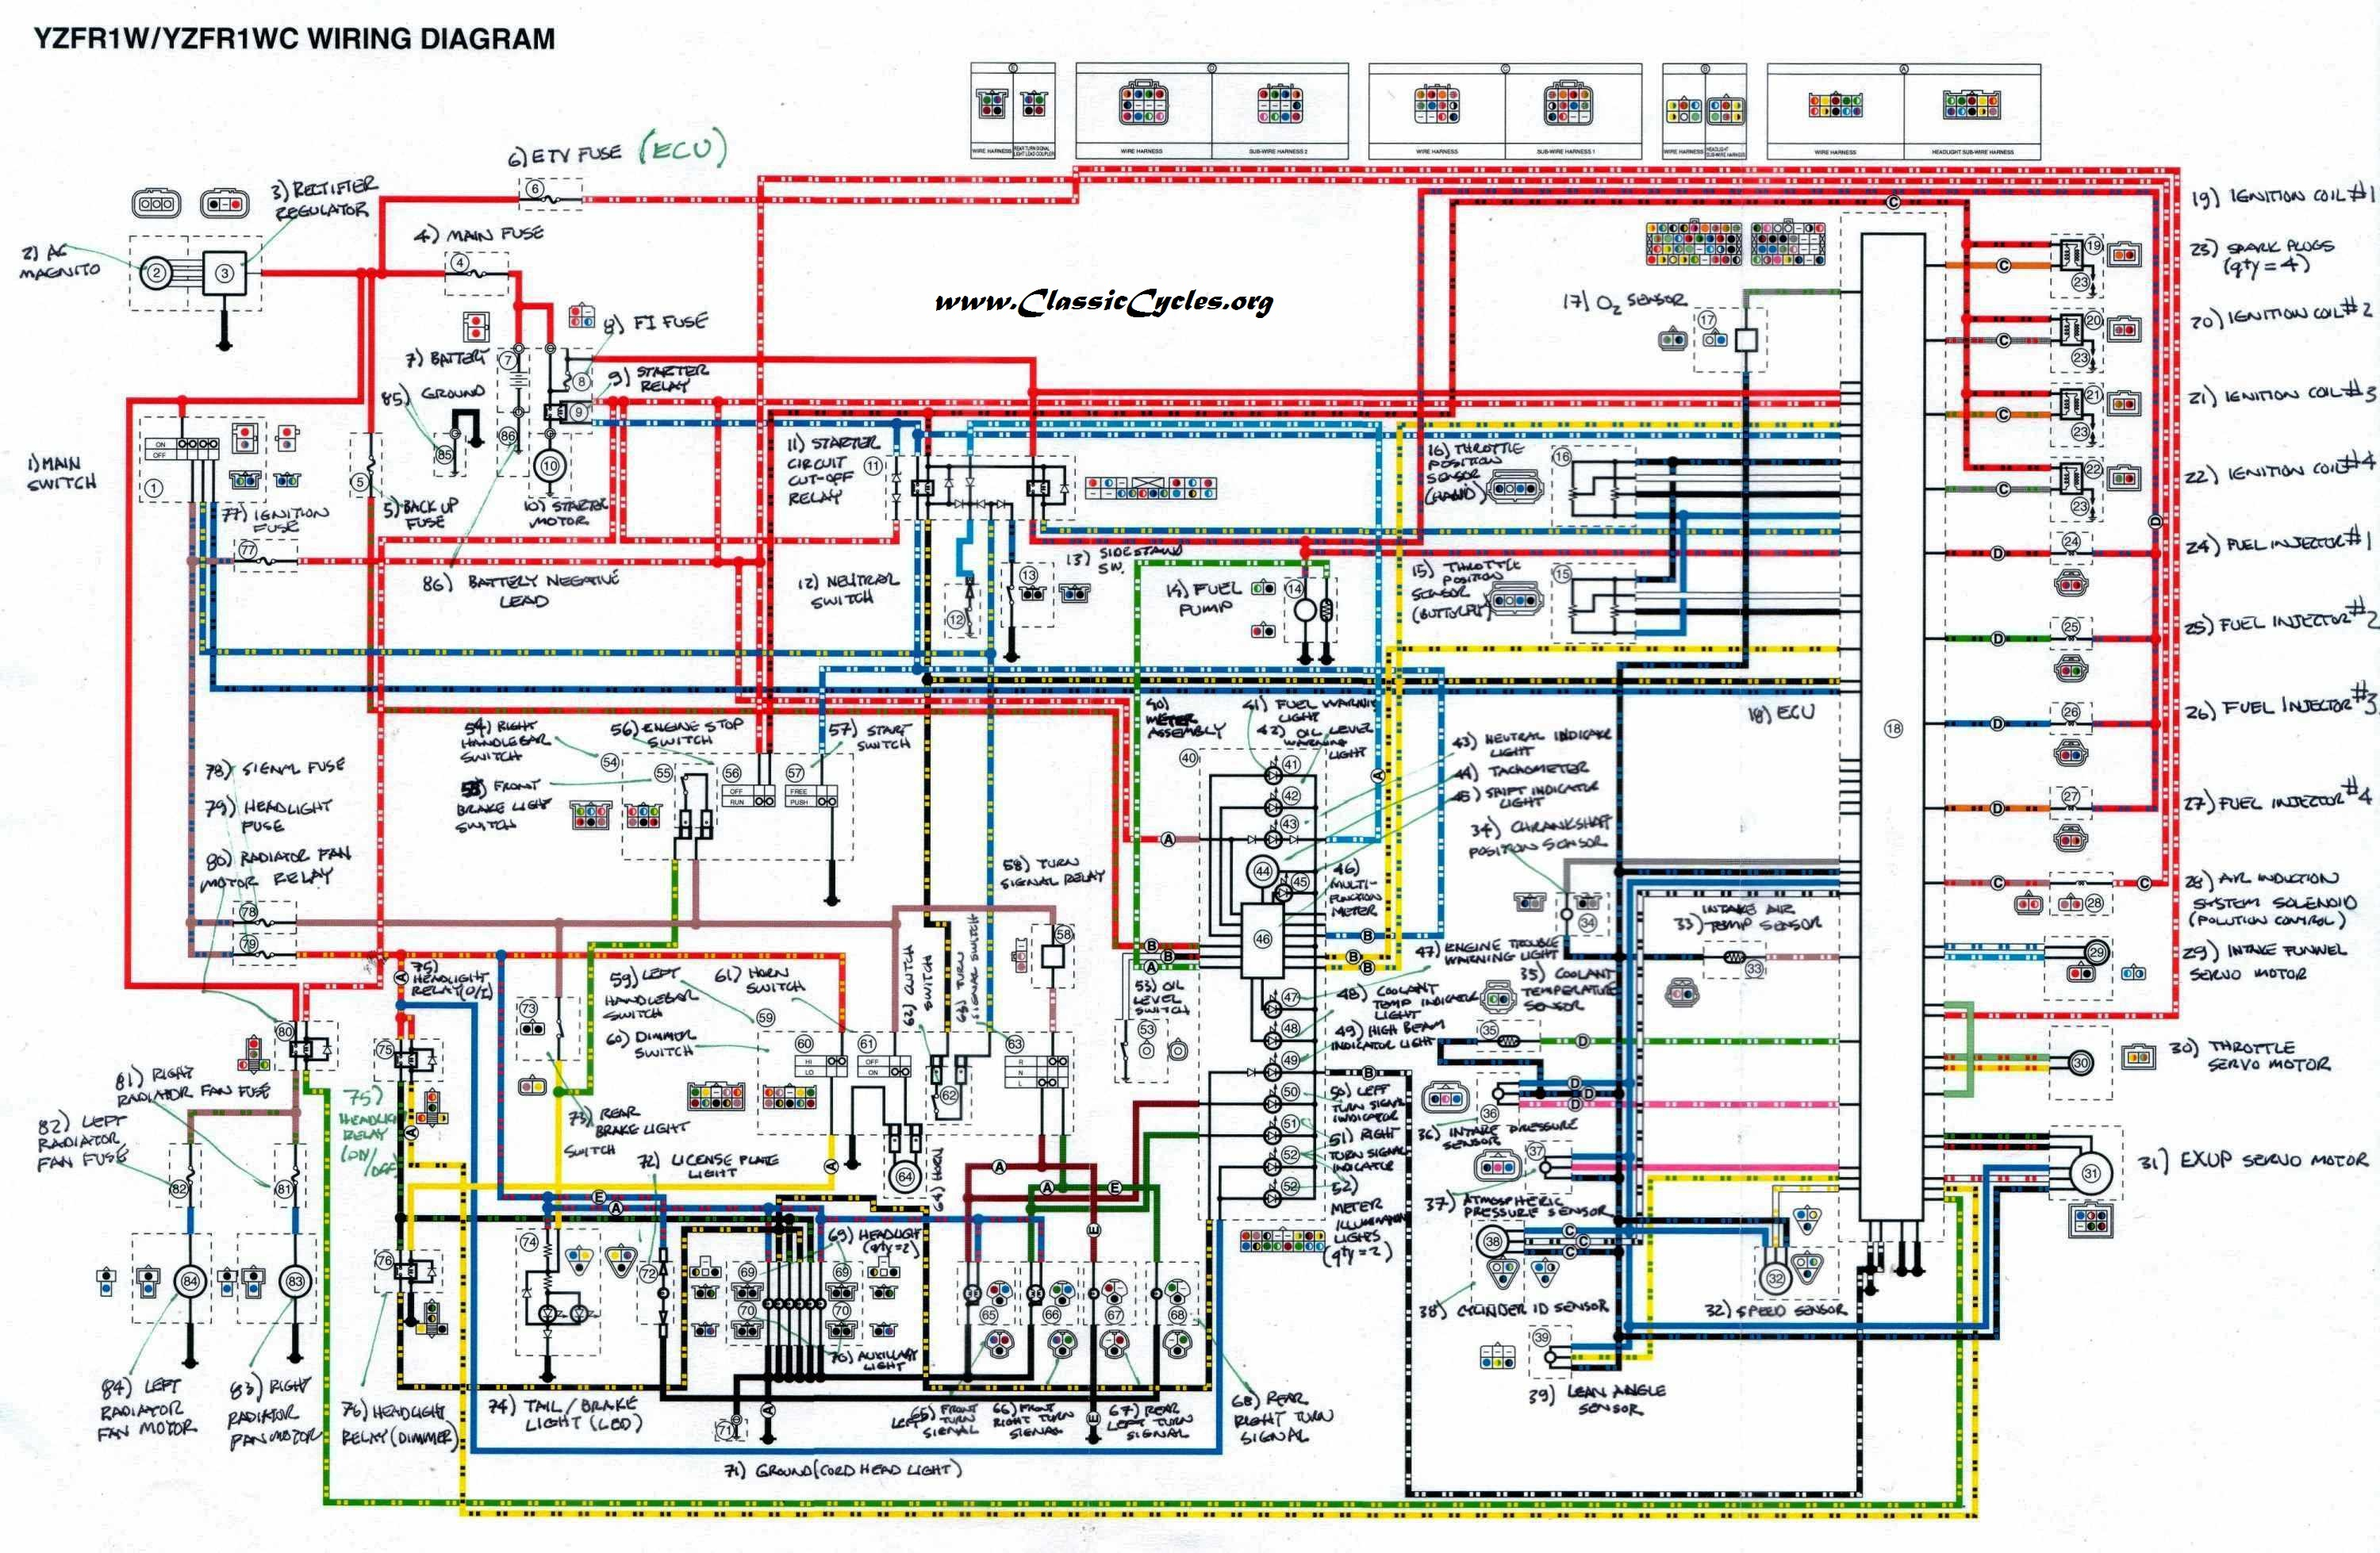 Yamaha 650 Wiring Schematics - free download wiring diagrams